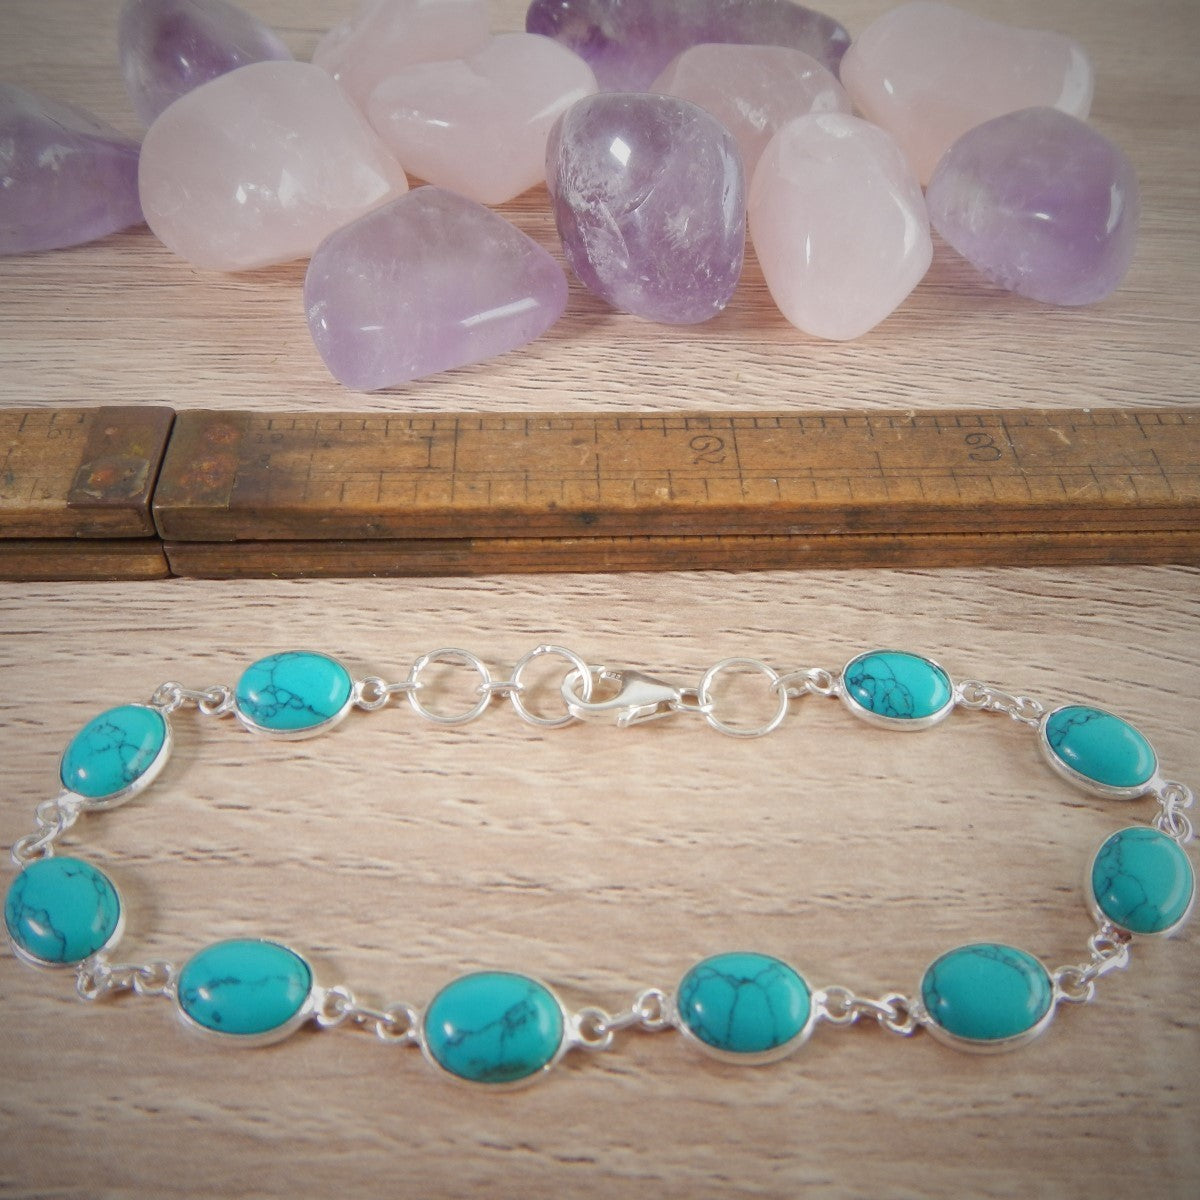 Turquoise & 925 Sterling Silver Bracelet.